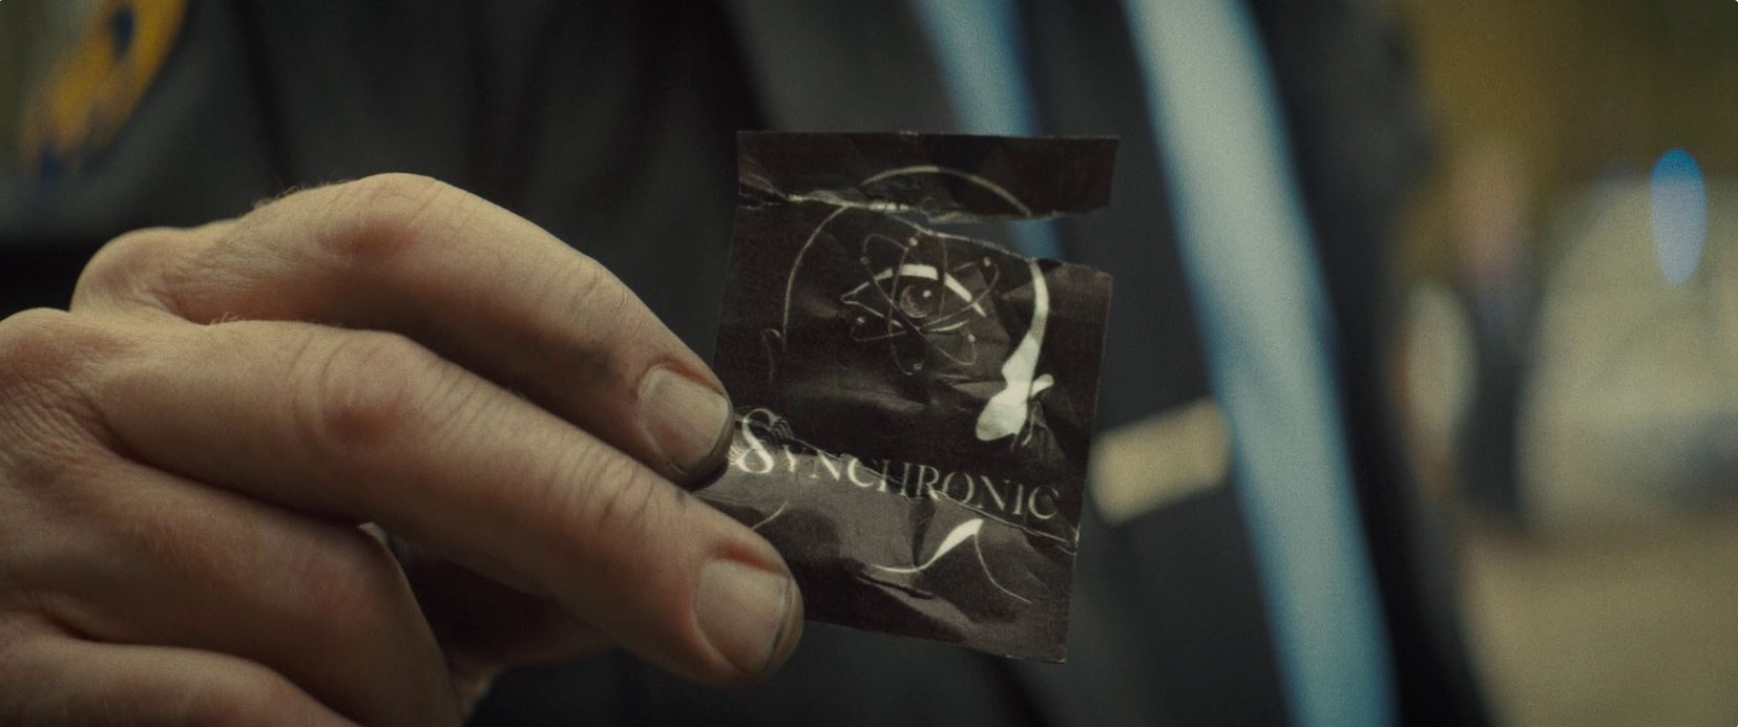 'Synchronic': An Accelerated Time Travel That Could Have Been Great